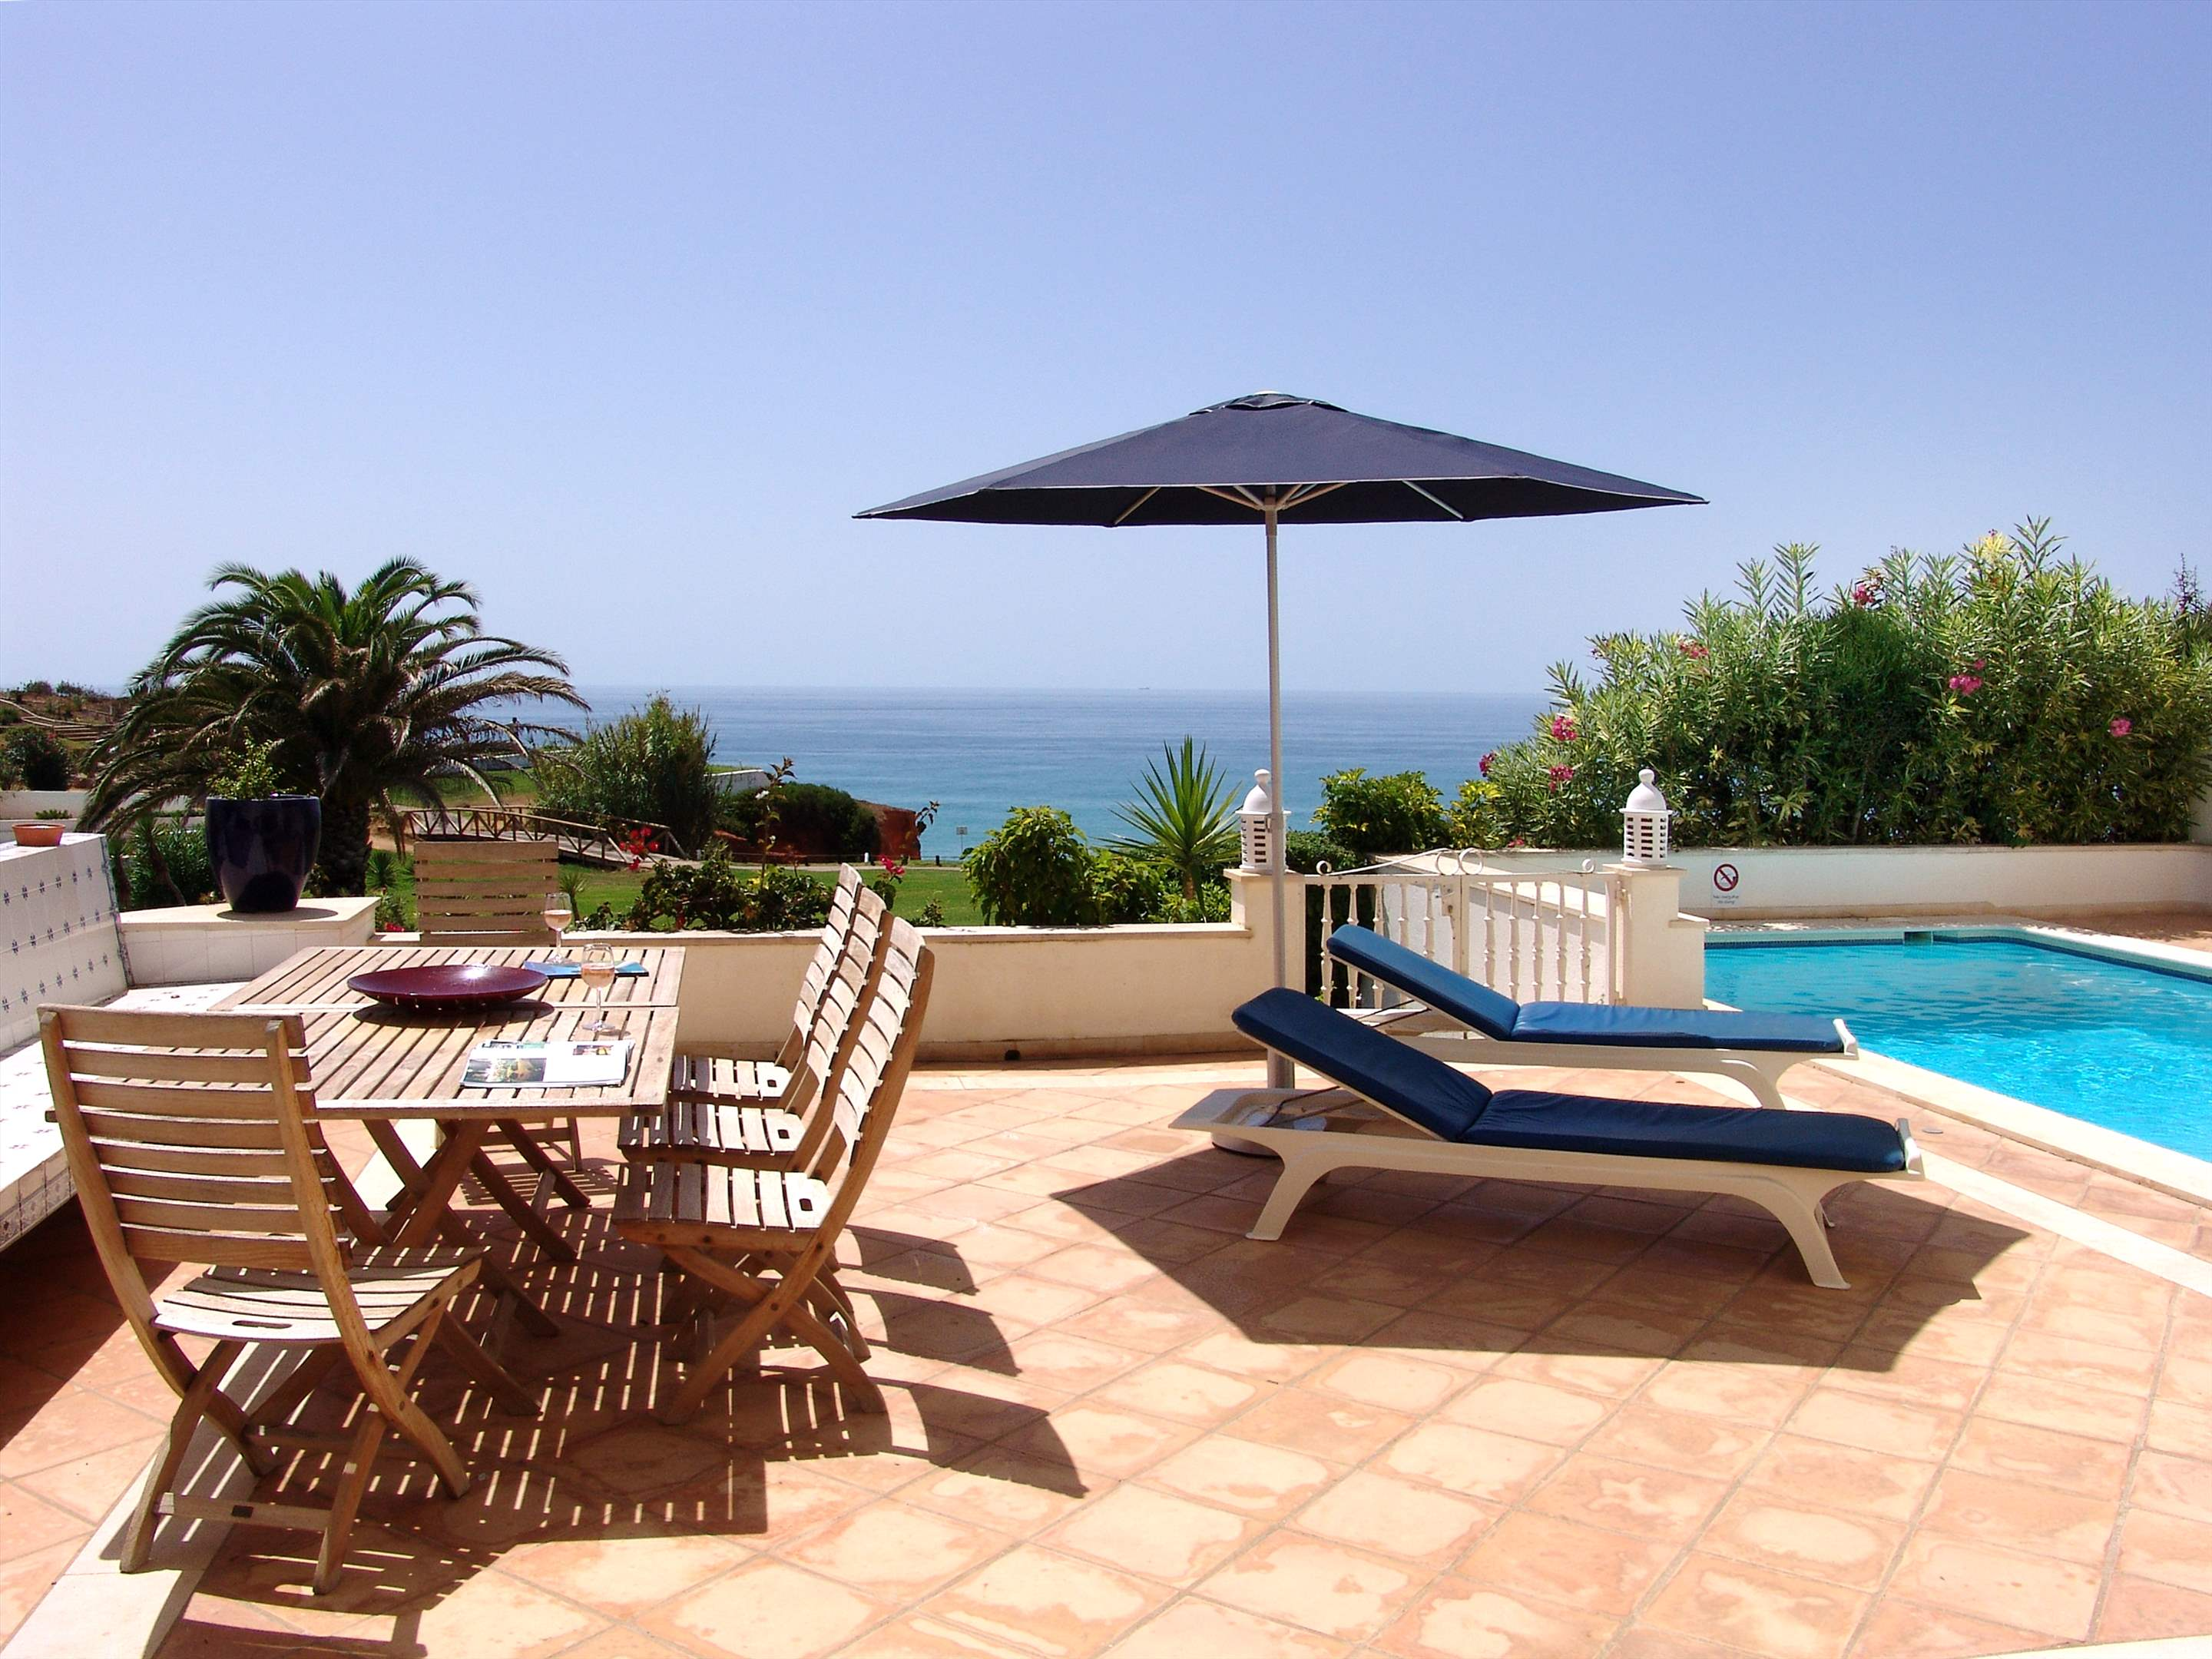 Villas Louisa, 5 bedroom, 5 bedroom villa in Vale do Lobo, Algarve Photo #12